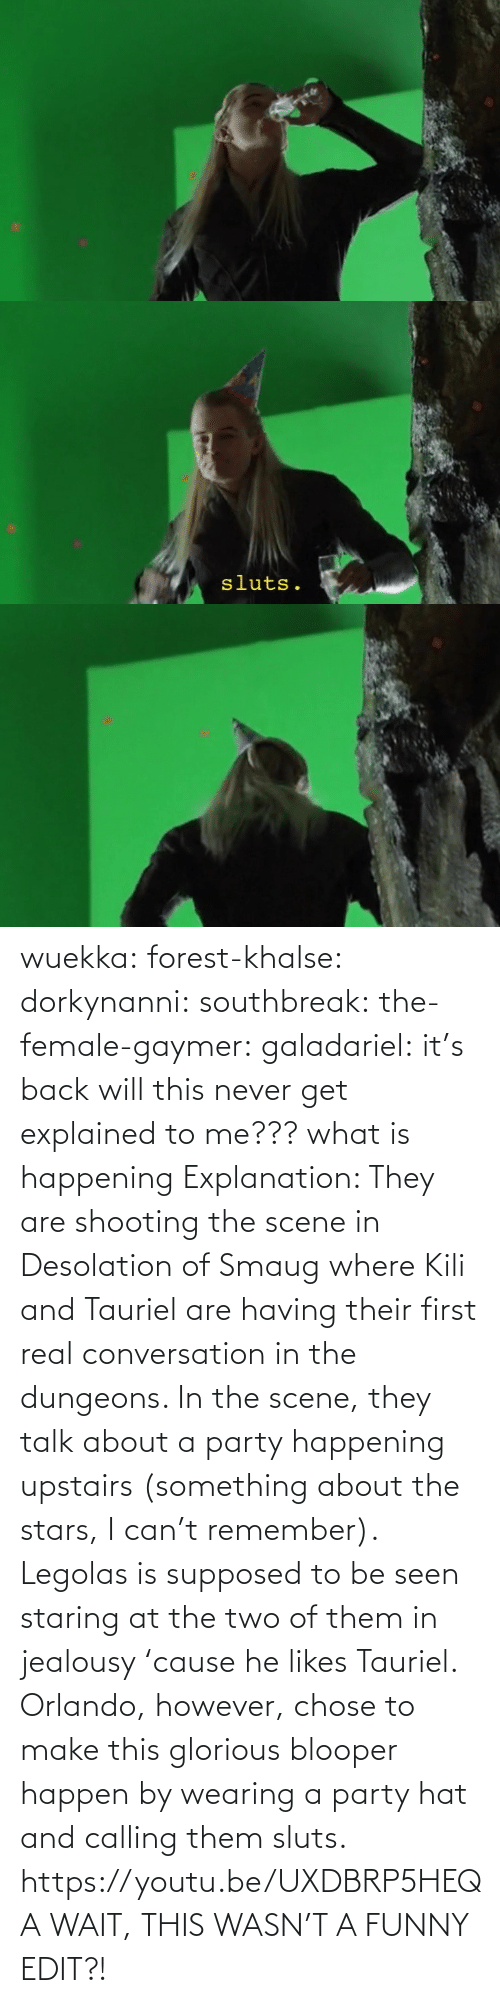 Party: wuekka: forest-khalse:   dorkynanni:  southbreak:   the-female-gaymer:   galadariel:  it's back   will this never get explained to me???    what is happening    Explanation:  They are shooting the scene in Desolation of Smaug where Kili and Tauriel are having their first real conversation in the dungeons.  In the scene, they talk about a party happening upstairs (something about the stars, I can't remember). Legolas is supposed to be seen staring at the two of them in jealousy 'cause he likes Tauriel.  Orlando, however, chose to make this glorious blooper happen by wearing a party hat and calling them sluts.    https://youtu.be/UXDBRP5HEQA    WAIT, THIS WASN'T A FUNNY EDIT?!